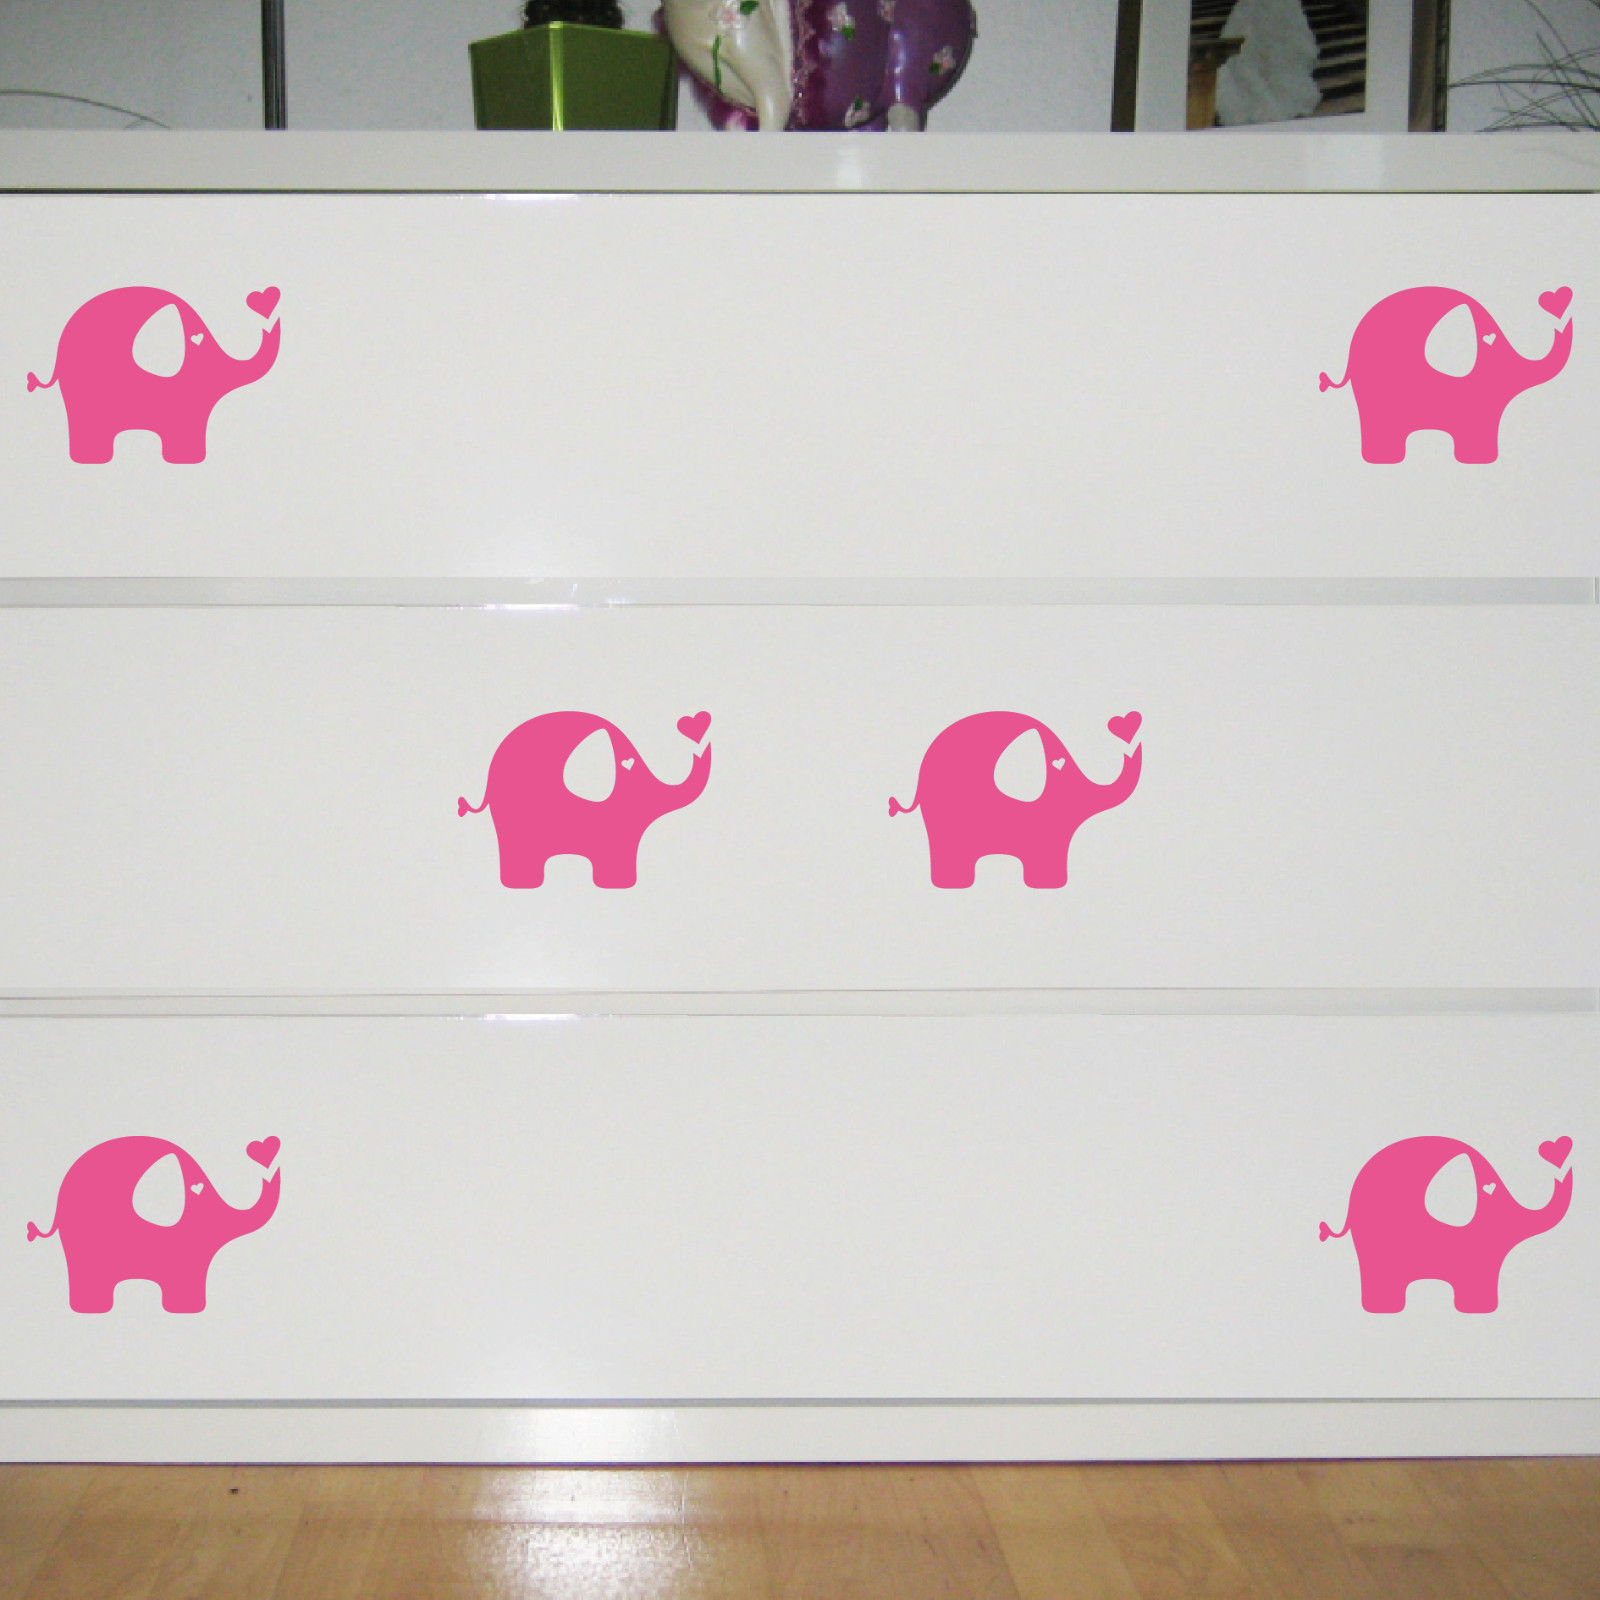 6 Aufkleber Elefant Rosa 10cm Tattoo Deko Folie Kinderzimmer Möbel Fenster  Regal